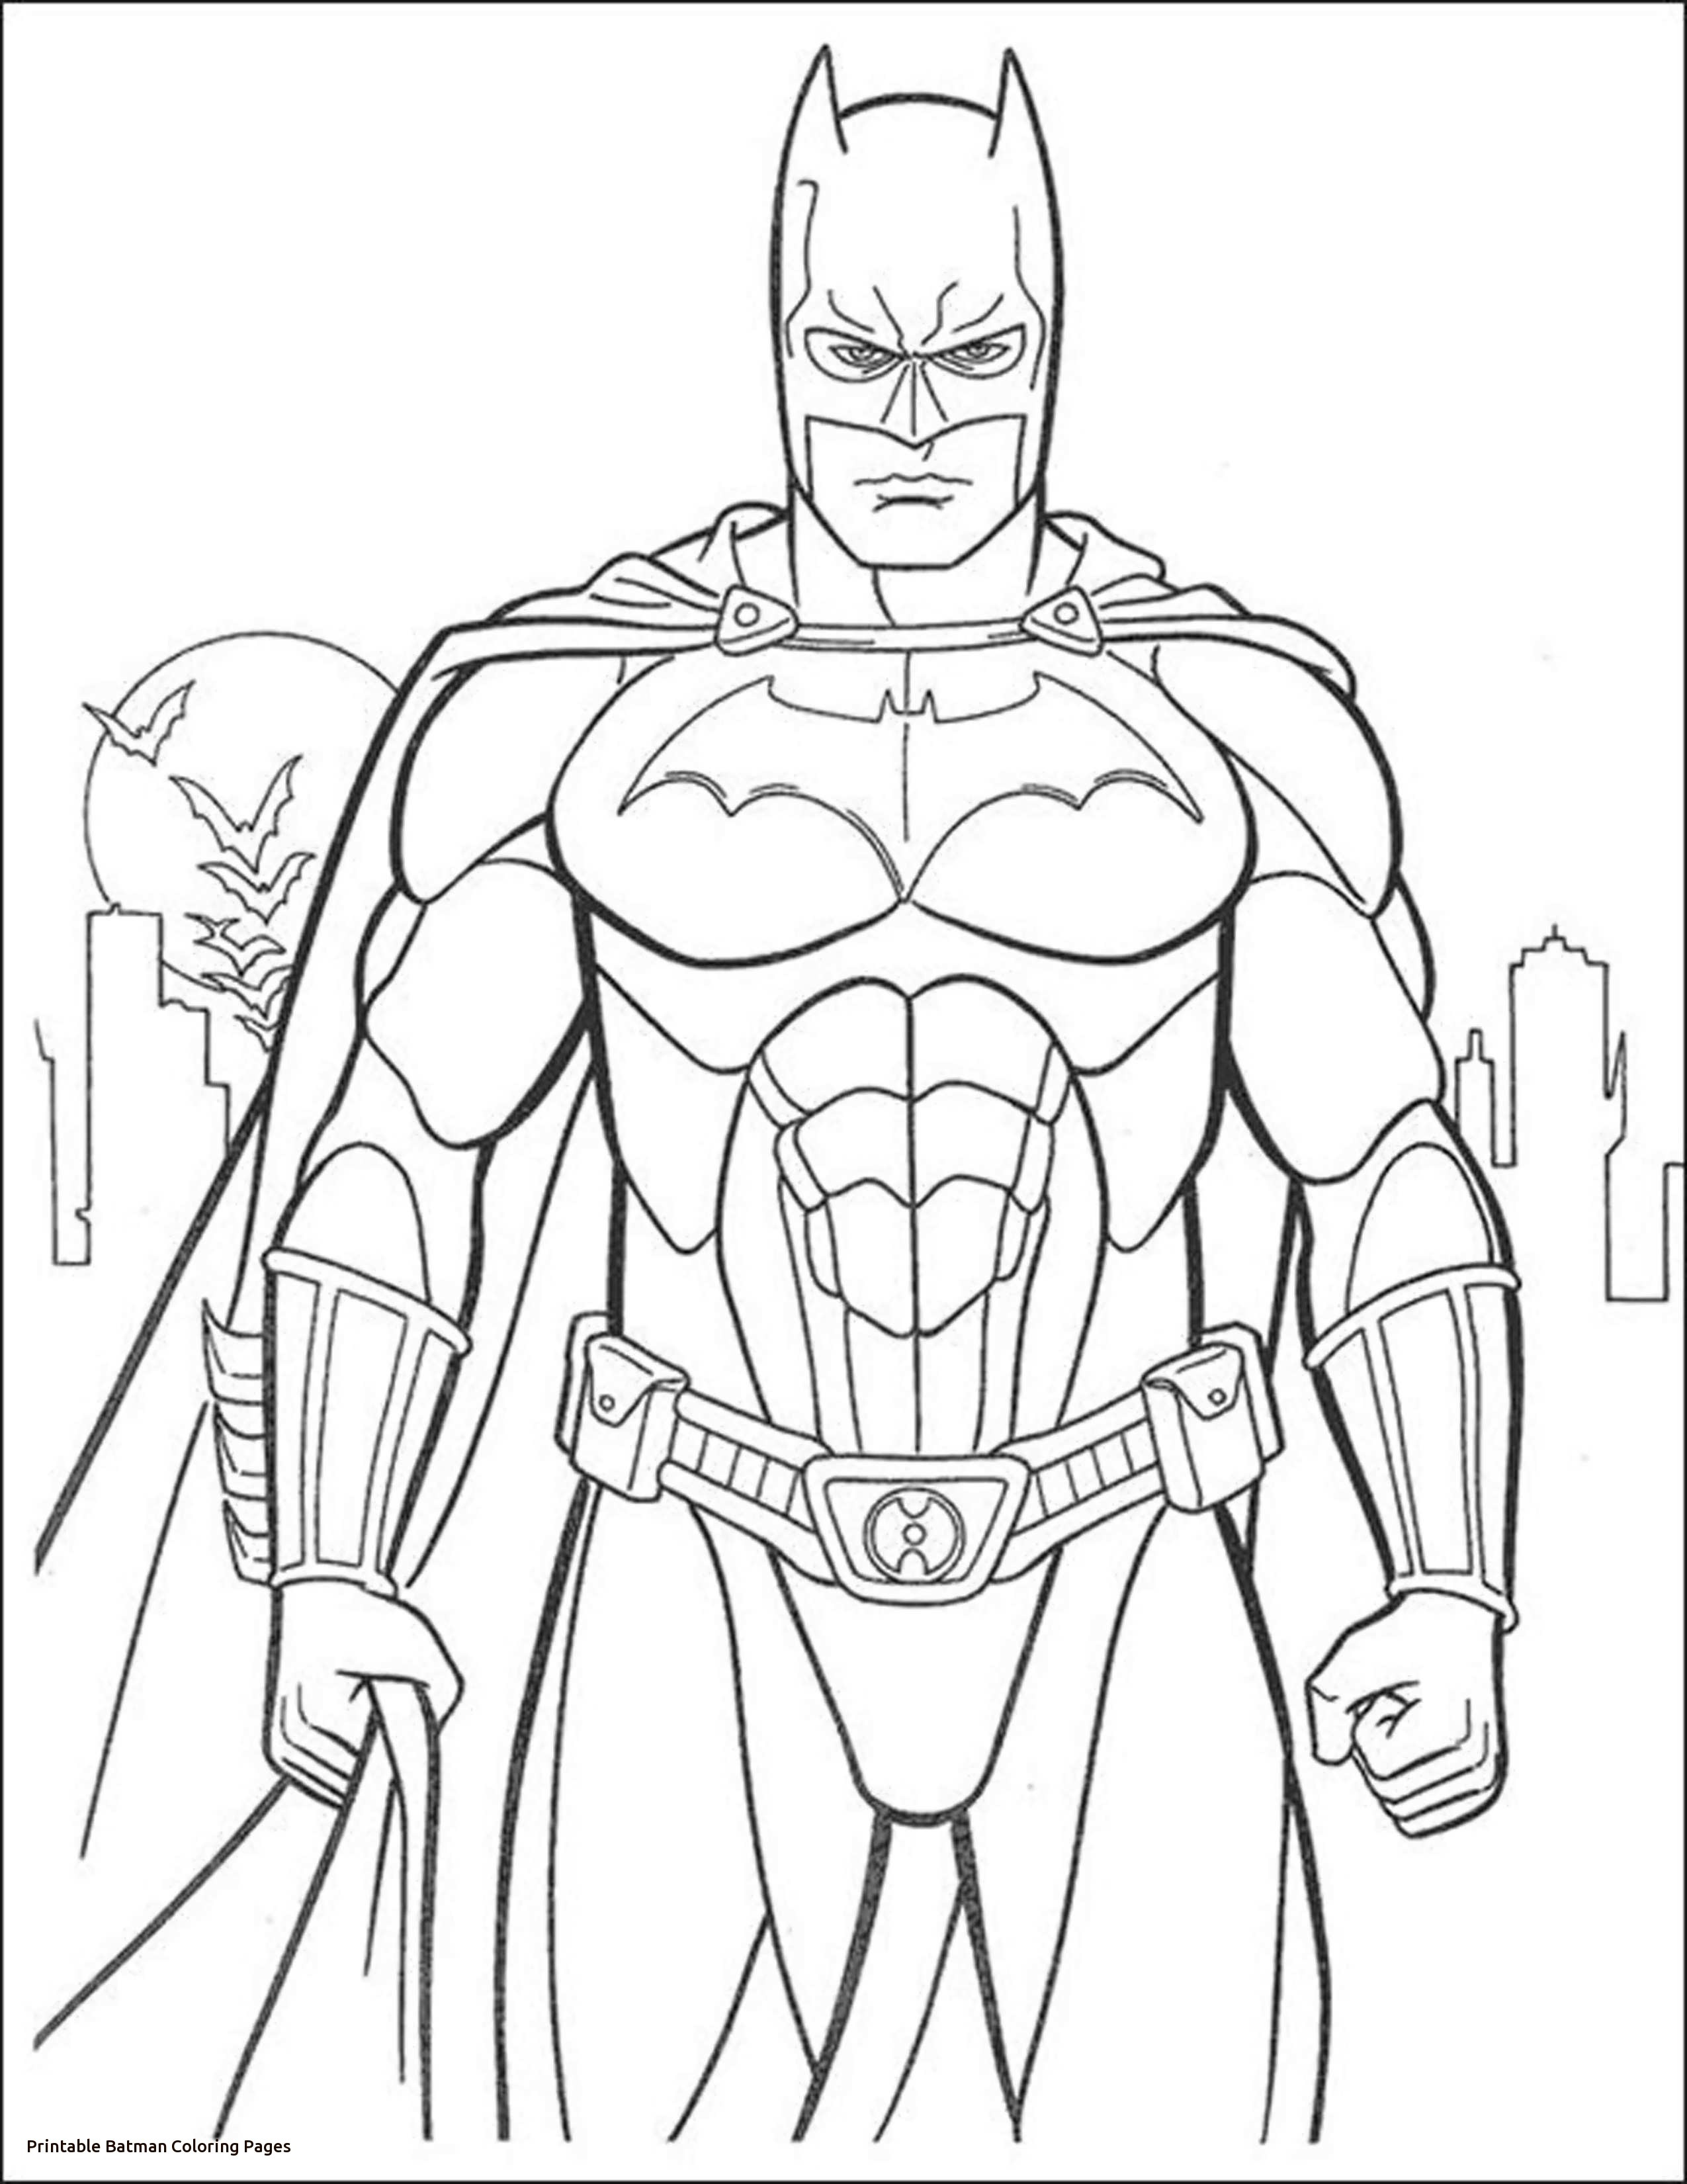 Best ideas about Free Batman Printable Coloring Pages . Save or Pin Best Free Printable Batman Coloring Pages Now.